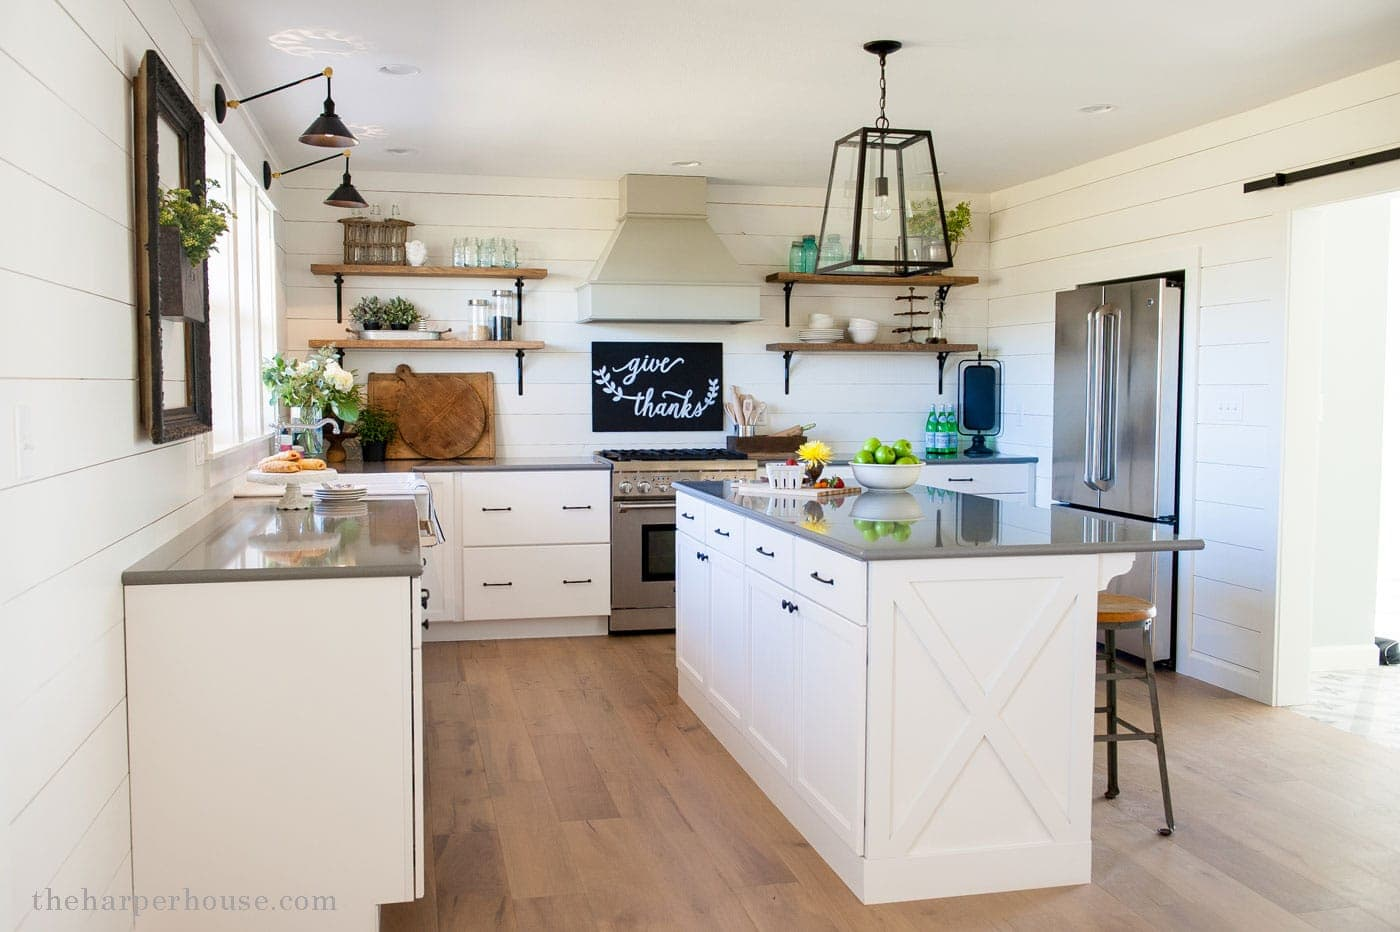 White Kitchen Oak Floor our farmhouse kitchen reveal | the harper house